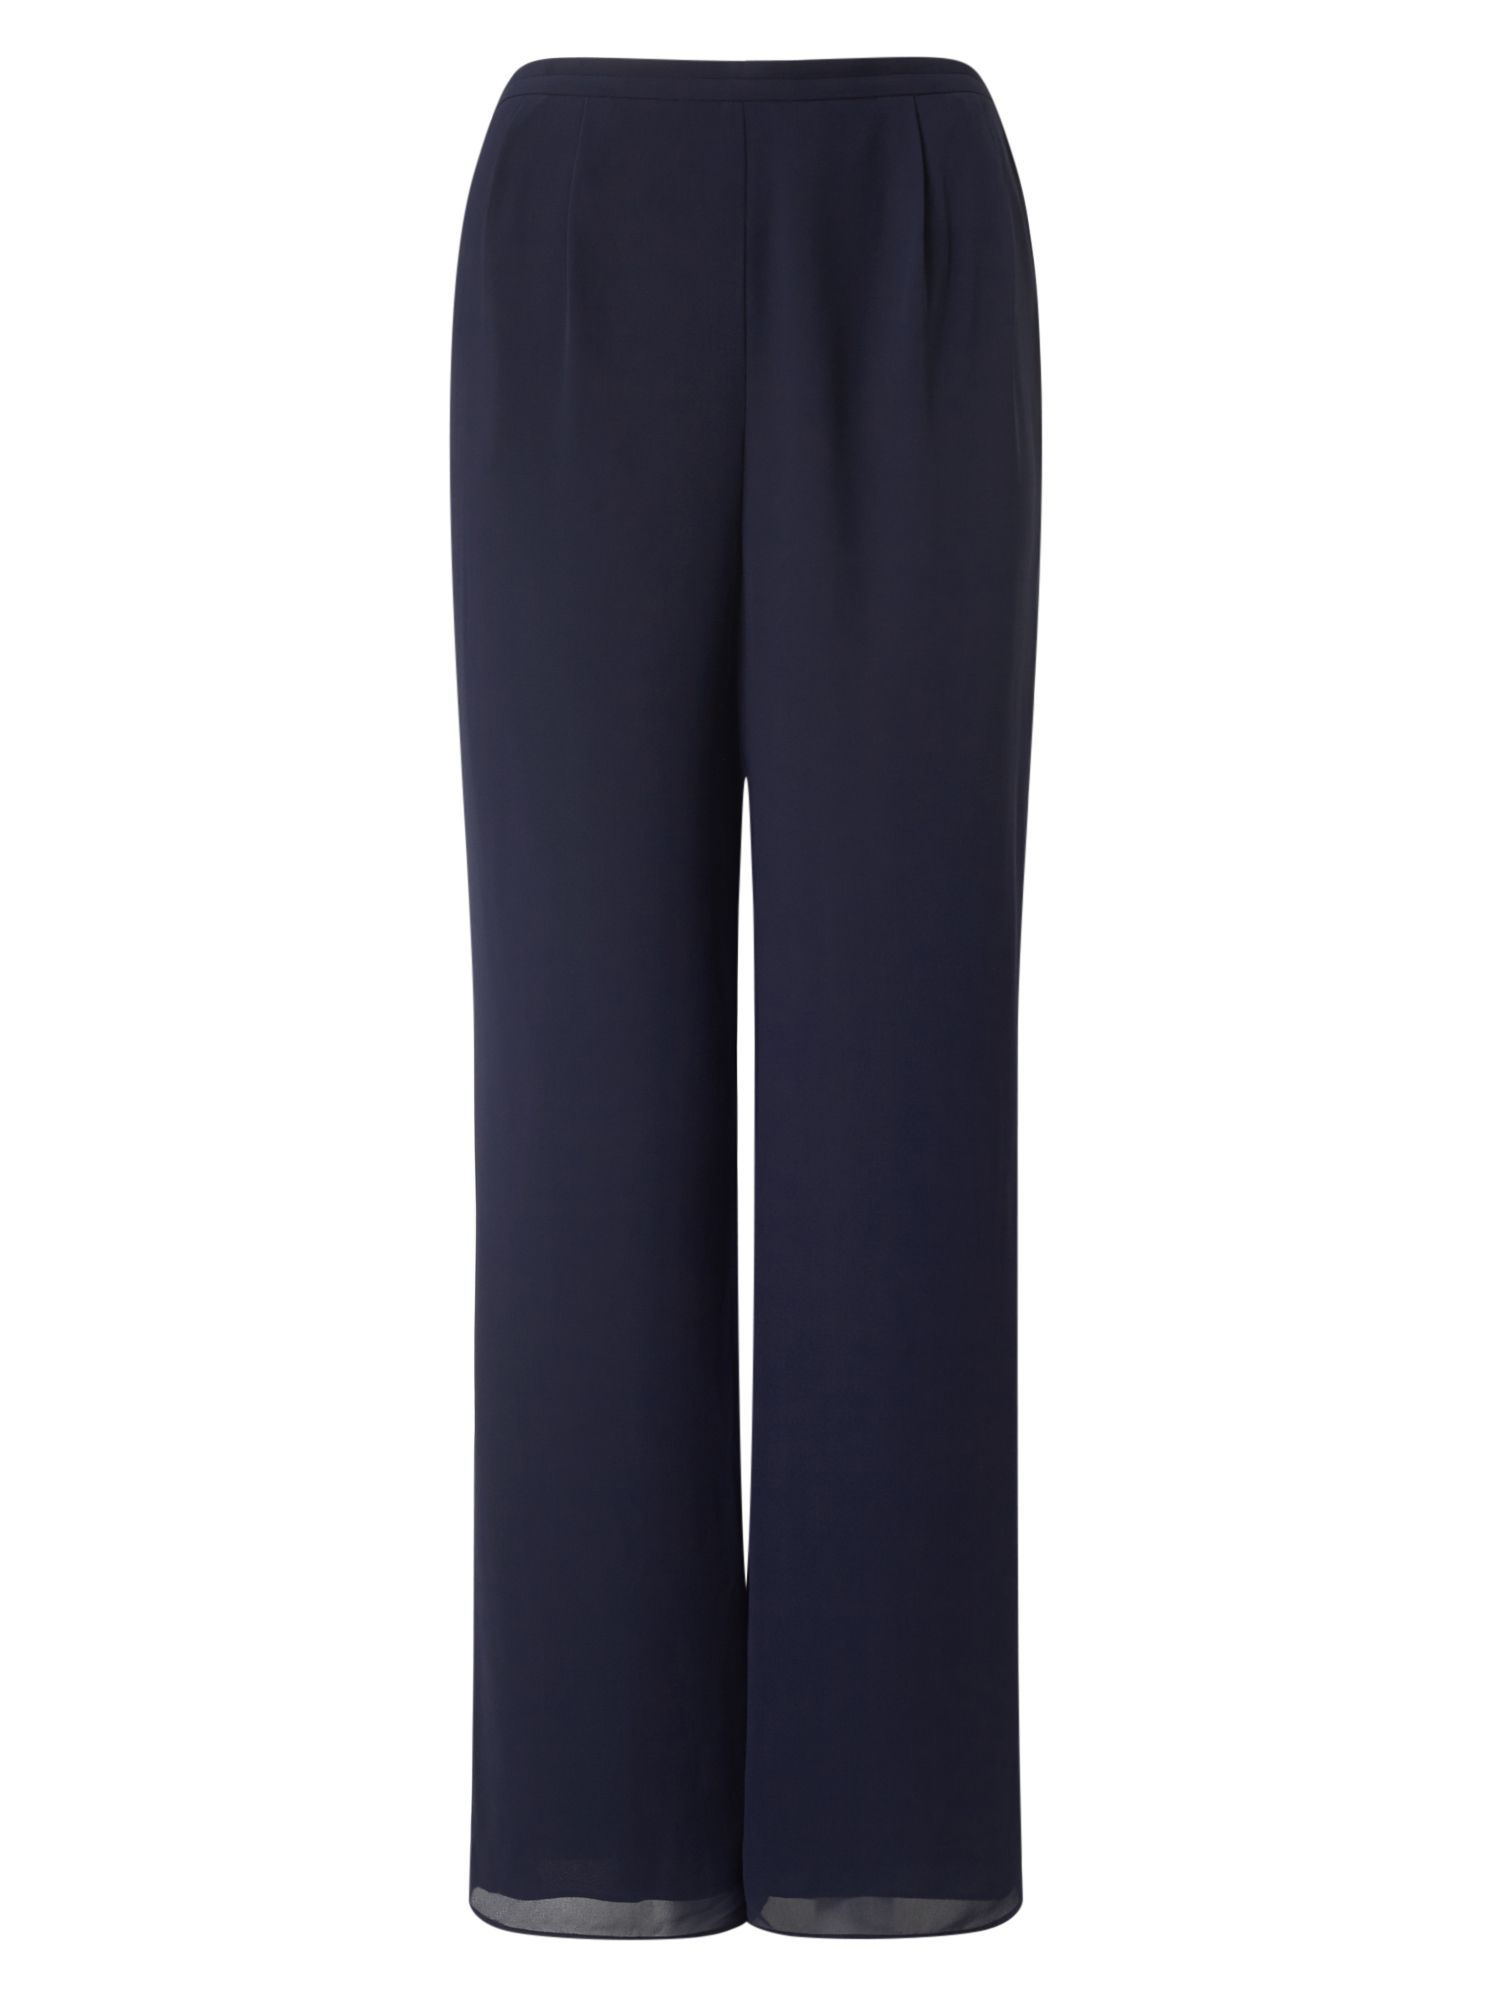 Jacques Vert Chiffon Straight Trouser, Blue